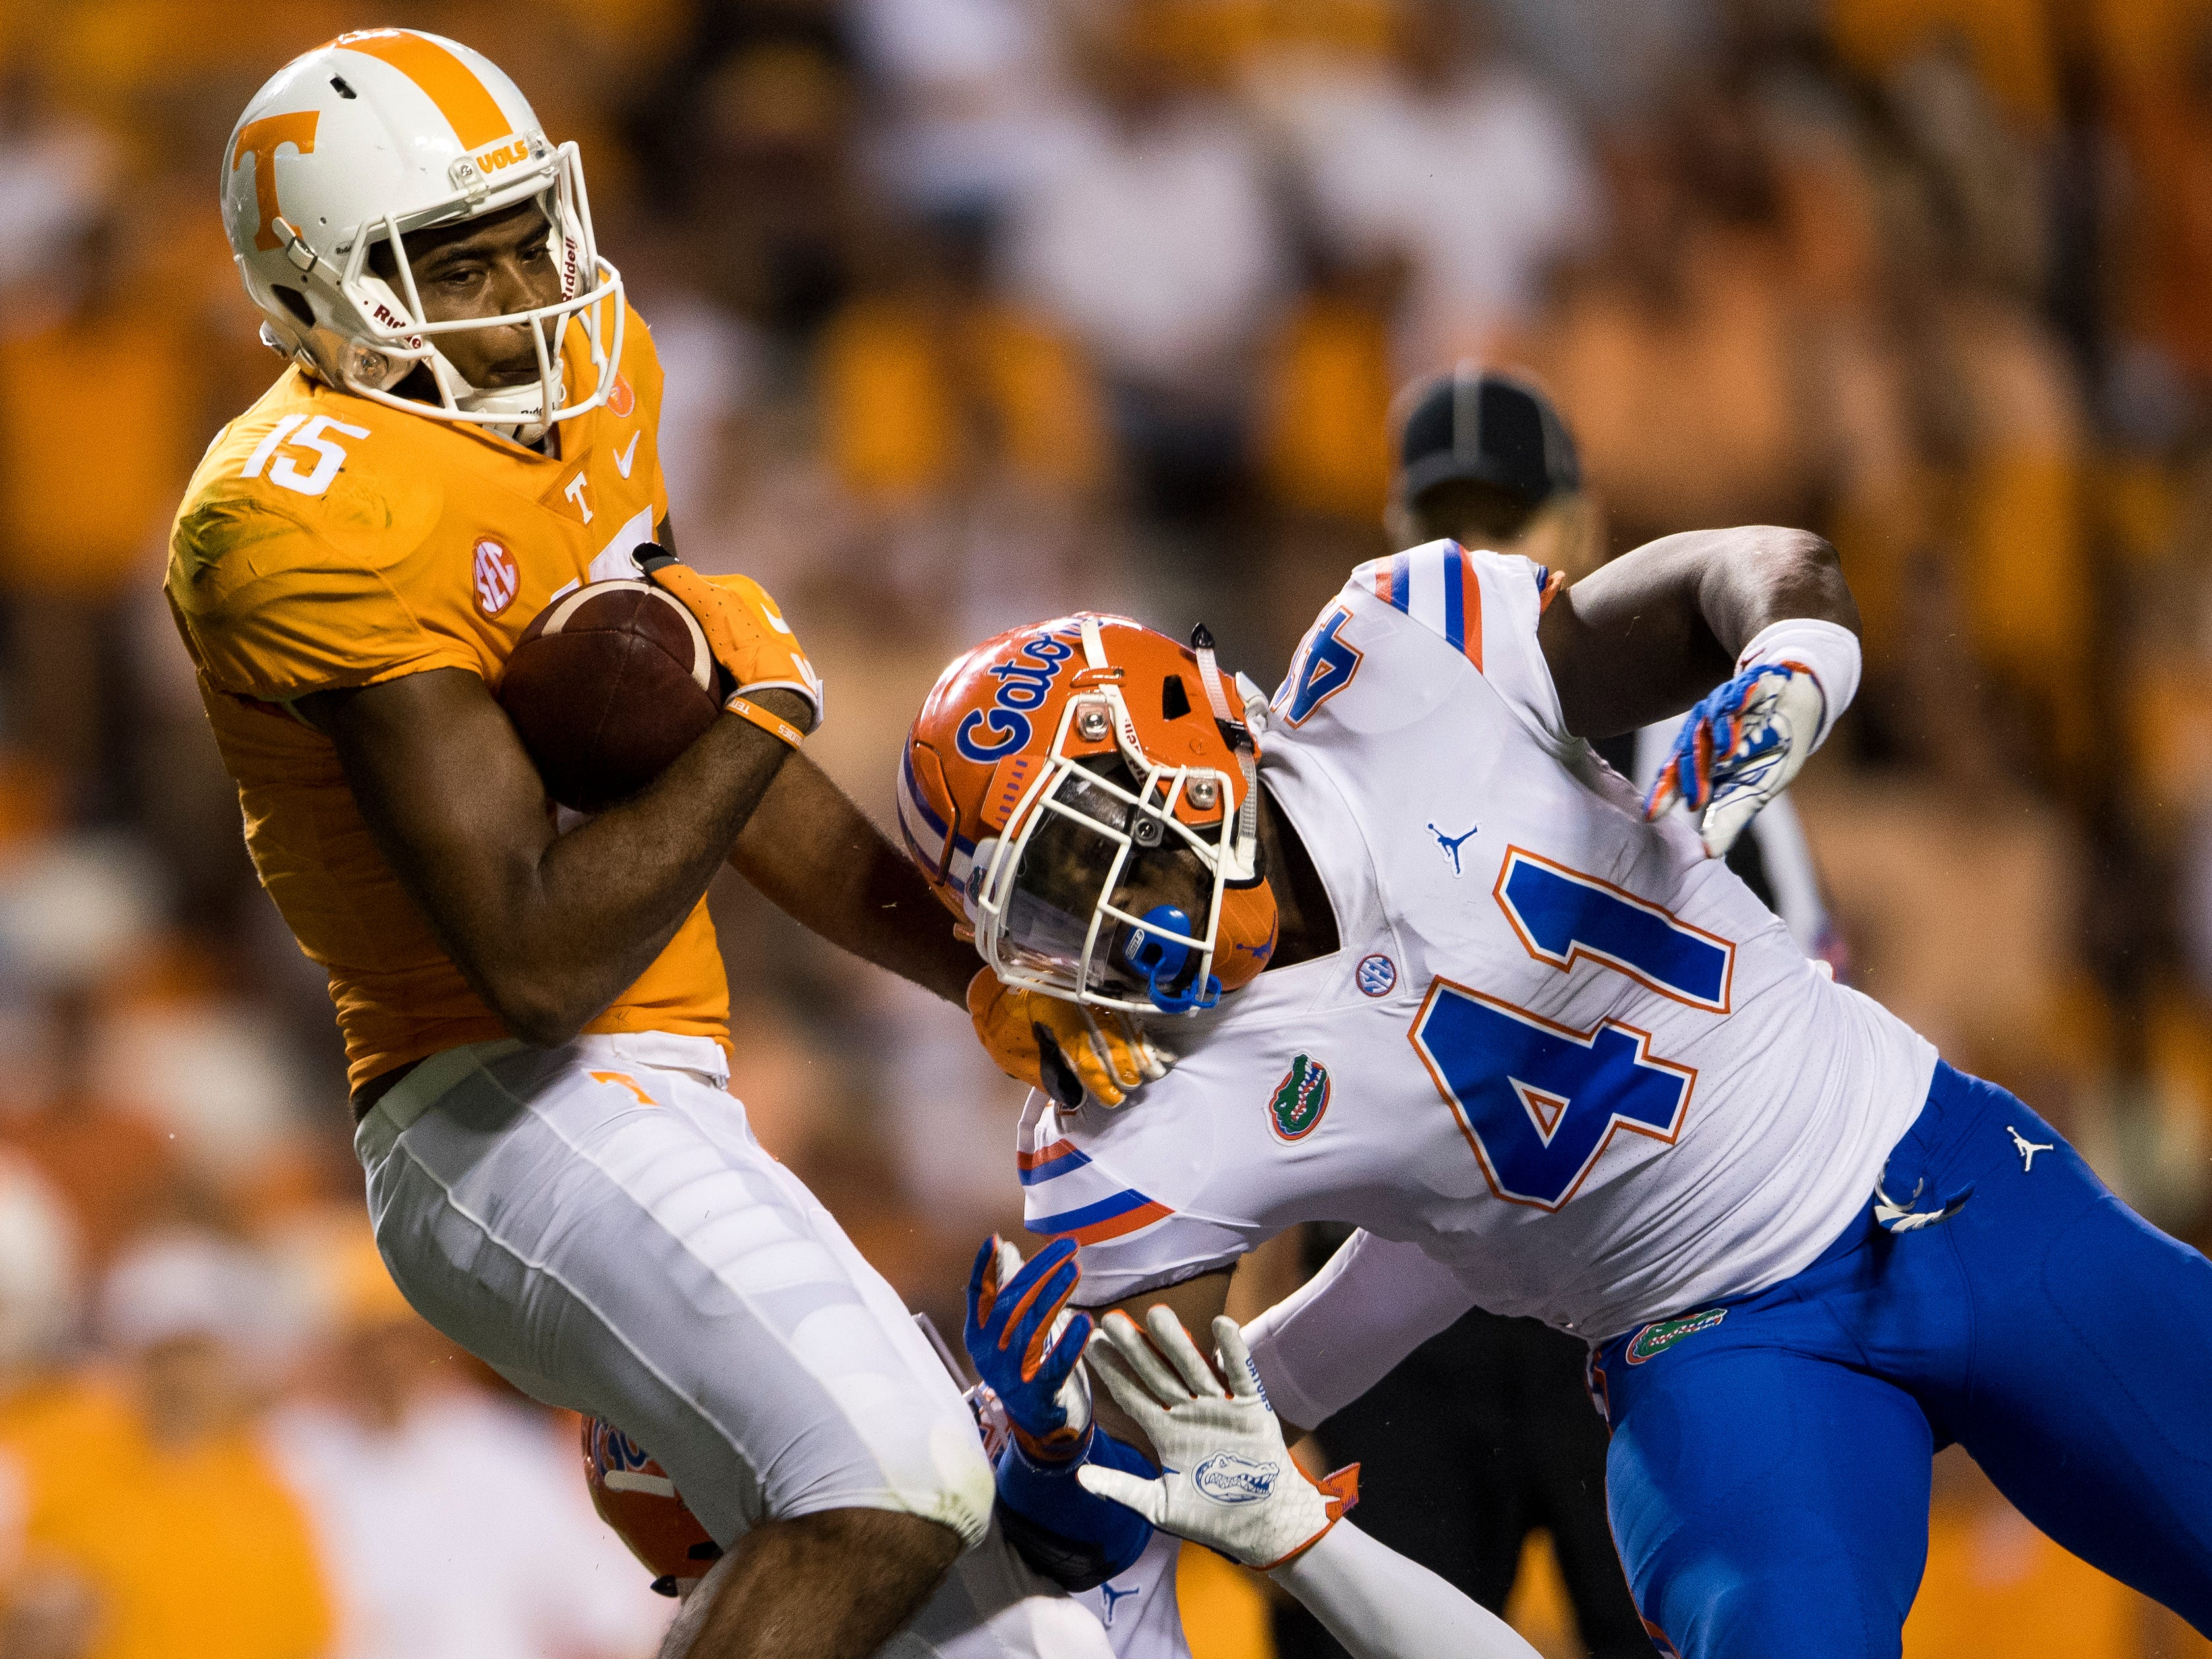 Tennessee wide receiver Jauan Jennings (15) fights for extra yards after catching a pass during the Tennessee Volunteers' game against Florida in Neyland Stadium on Saturday, Sept. 22, 2018.